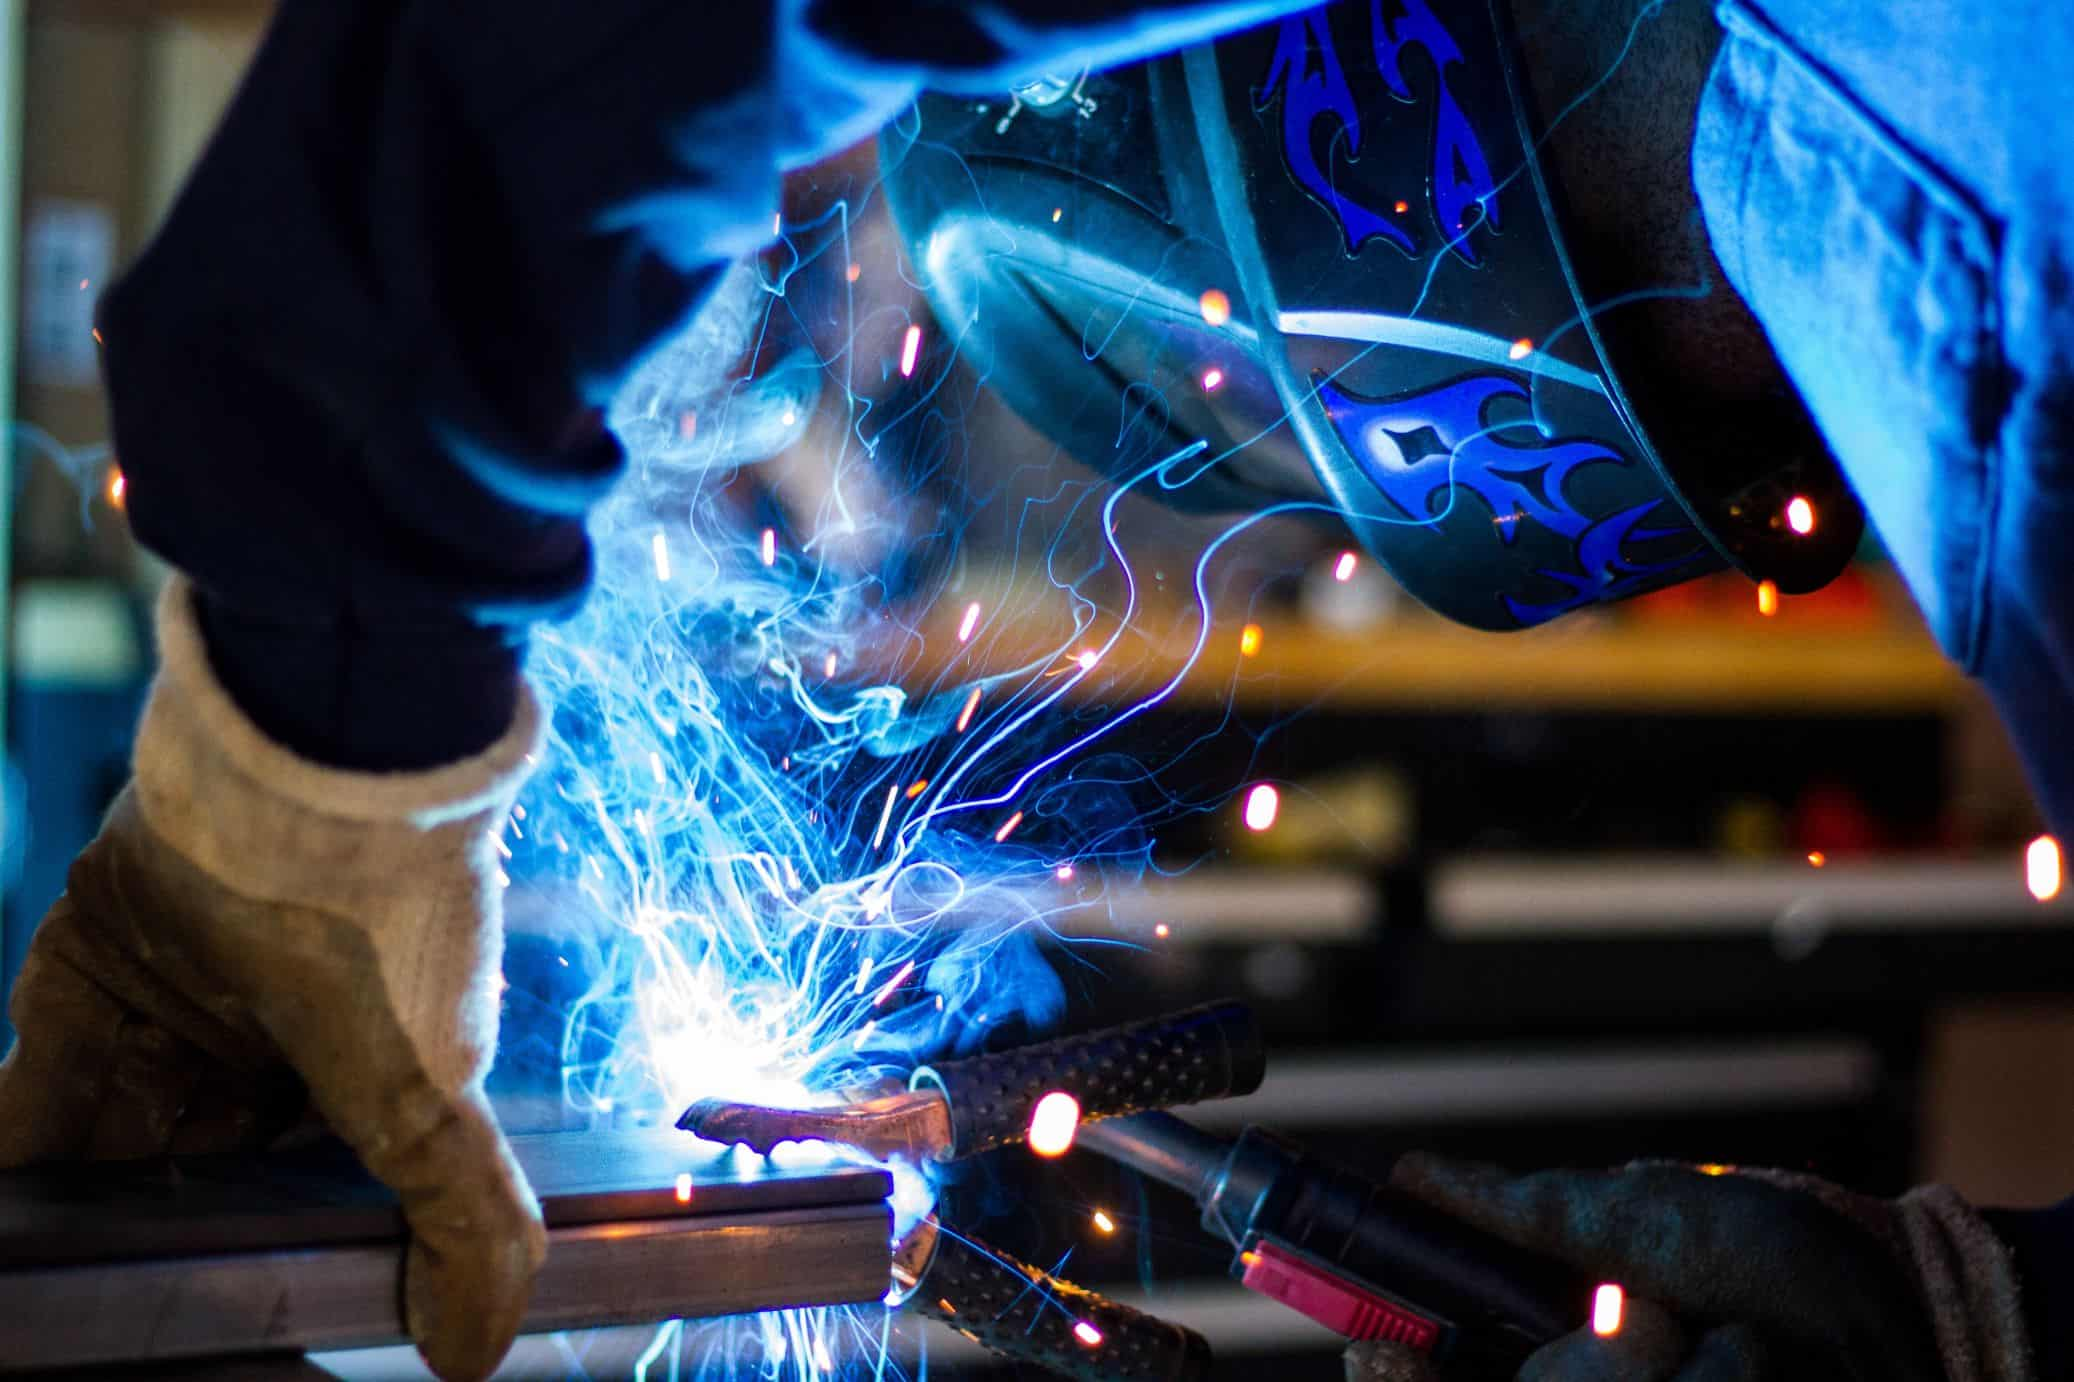 man holding welding tool and blue sparks